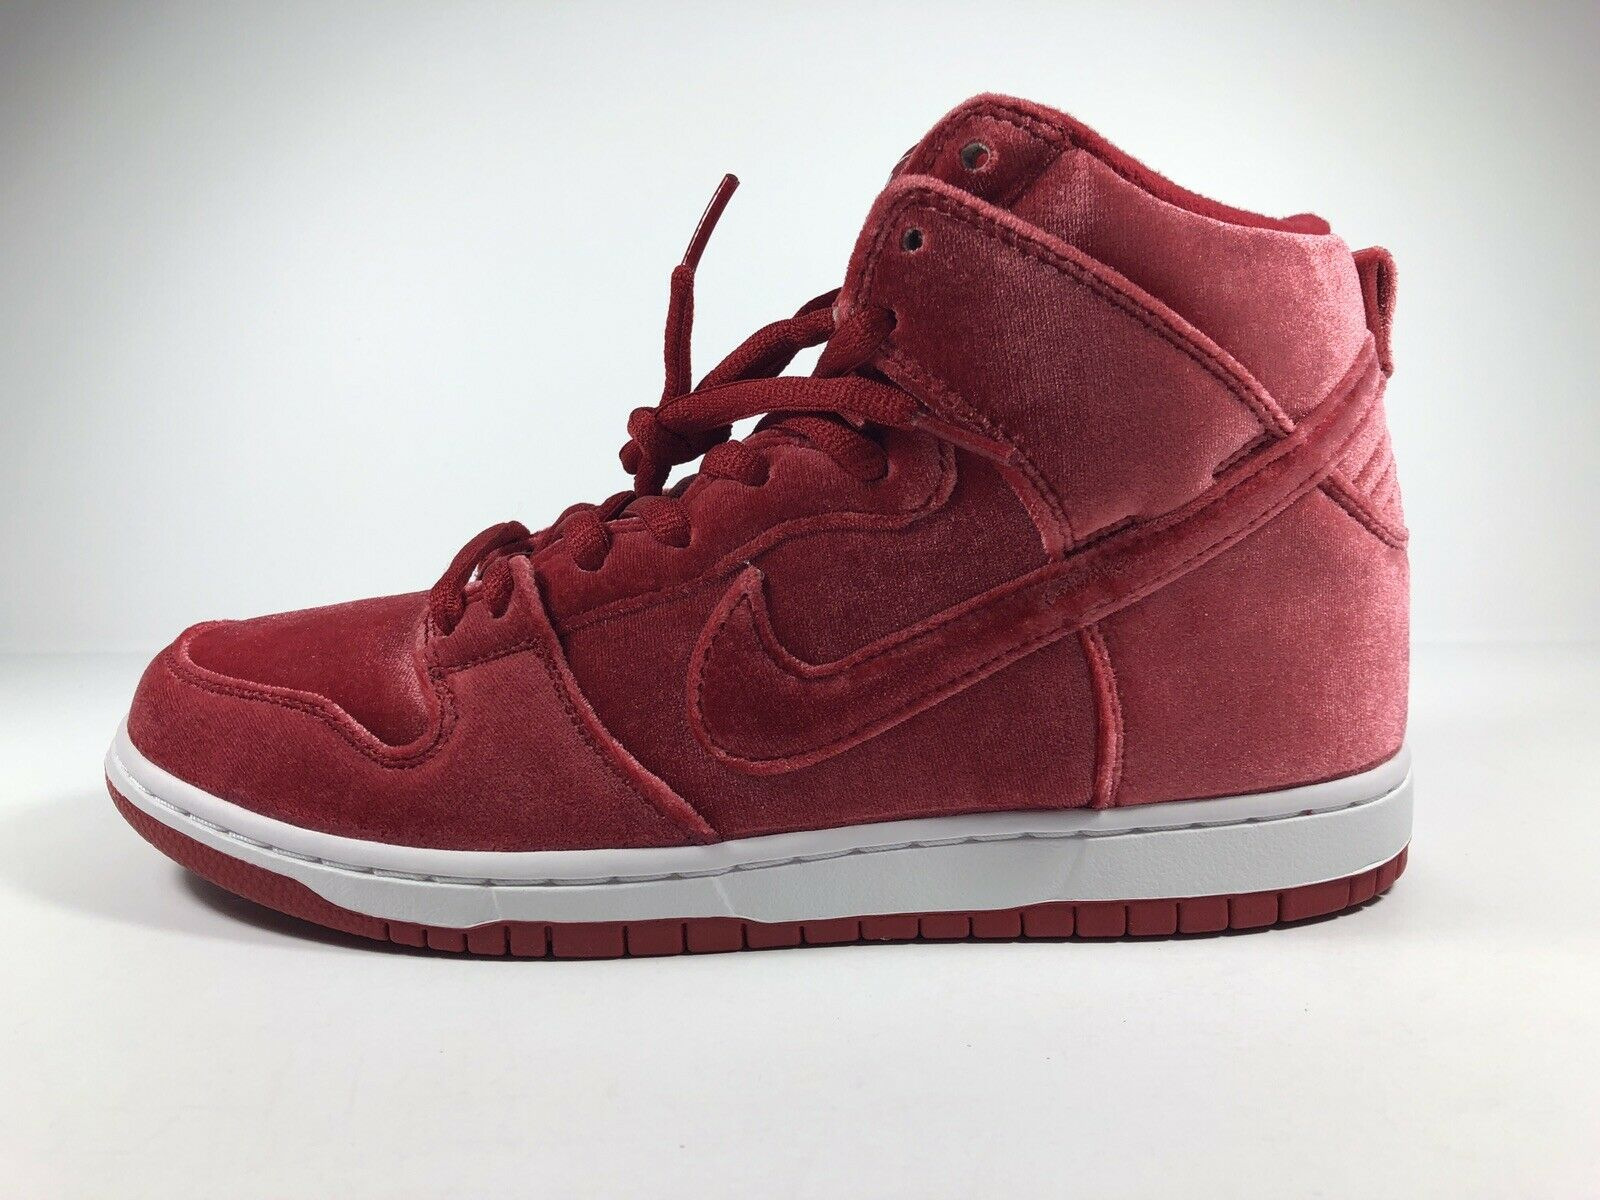 Nike Dunk High Premium SB Gym Red   White Size 8.5 313171 661